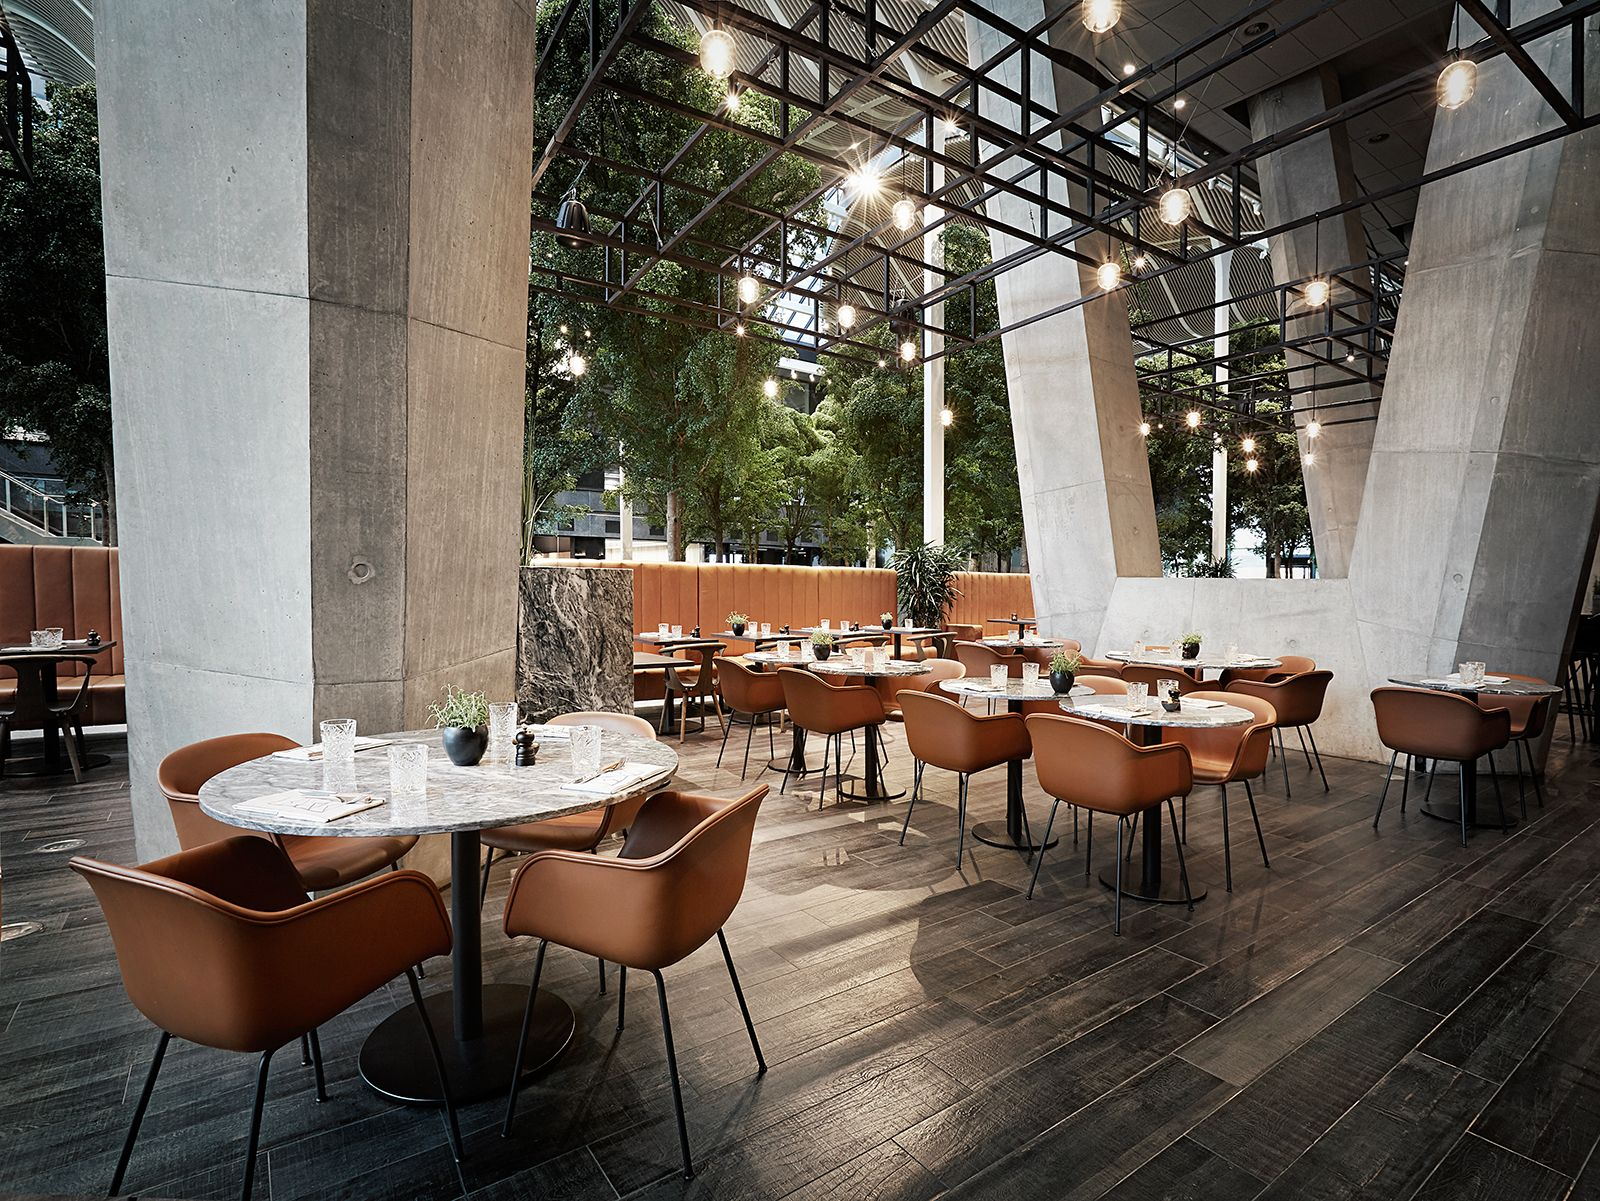 Interior design of restaurant bark at crowne plaza hotel - Interior design for hotels and restaurants ...